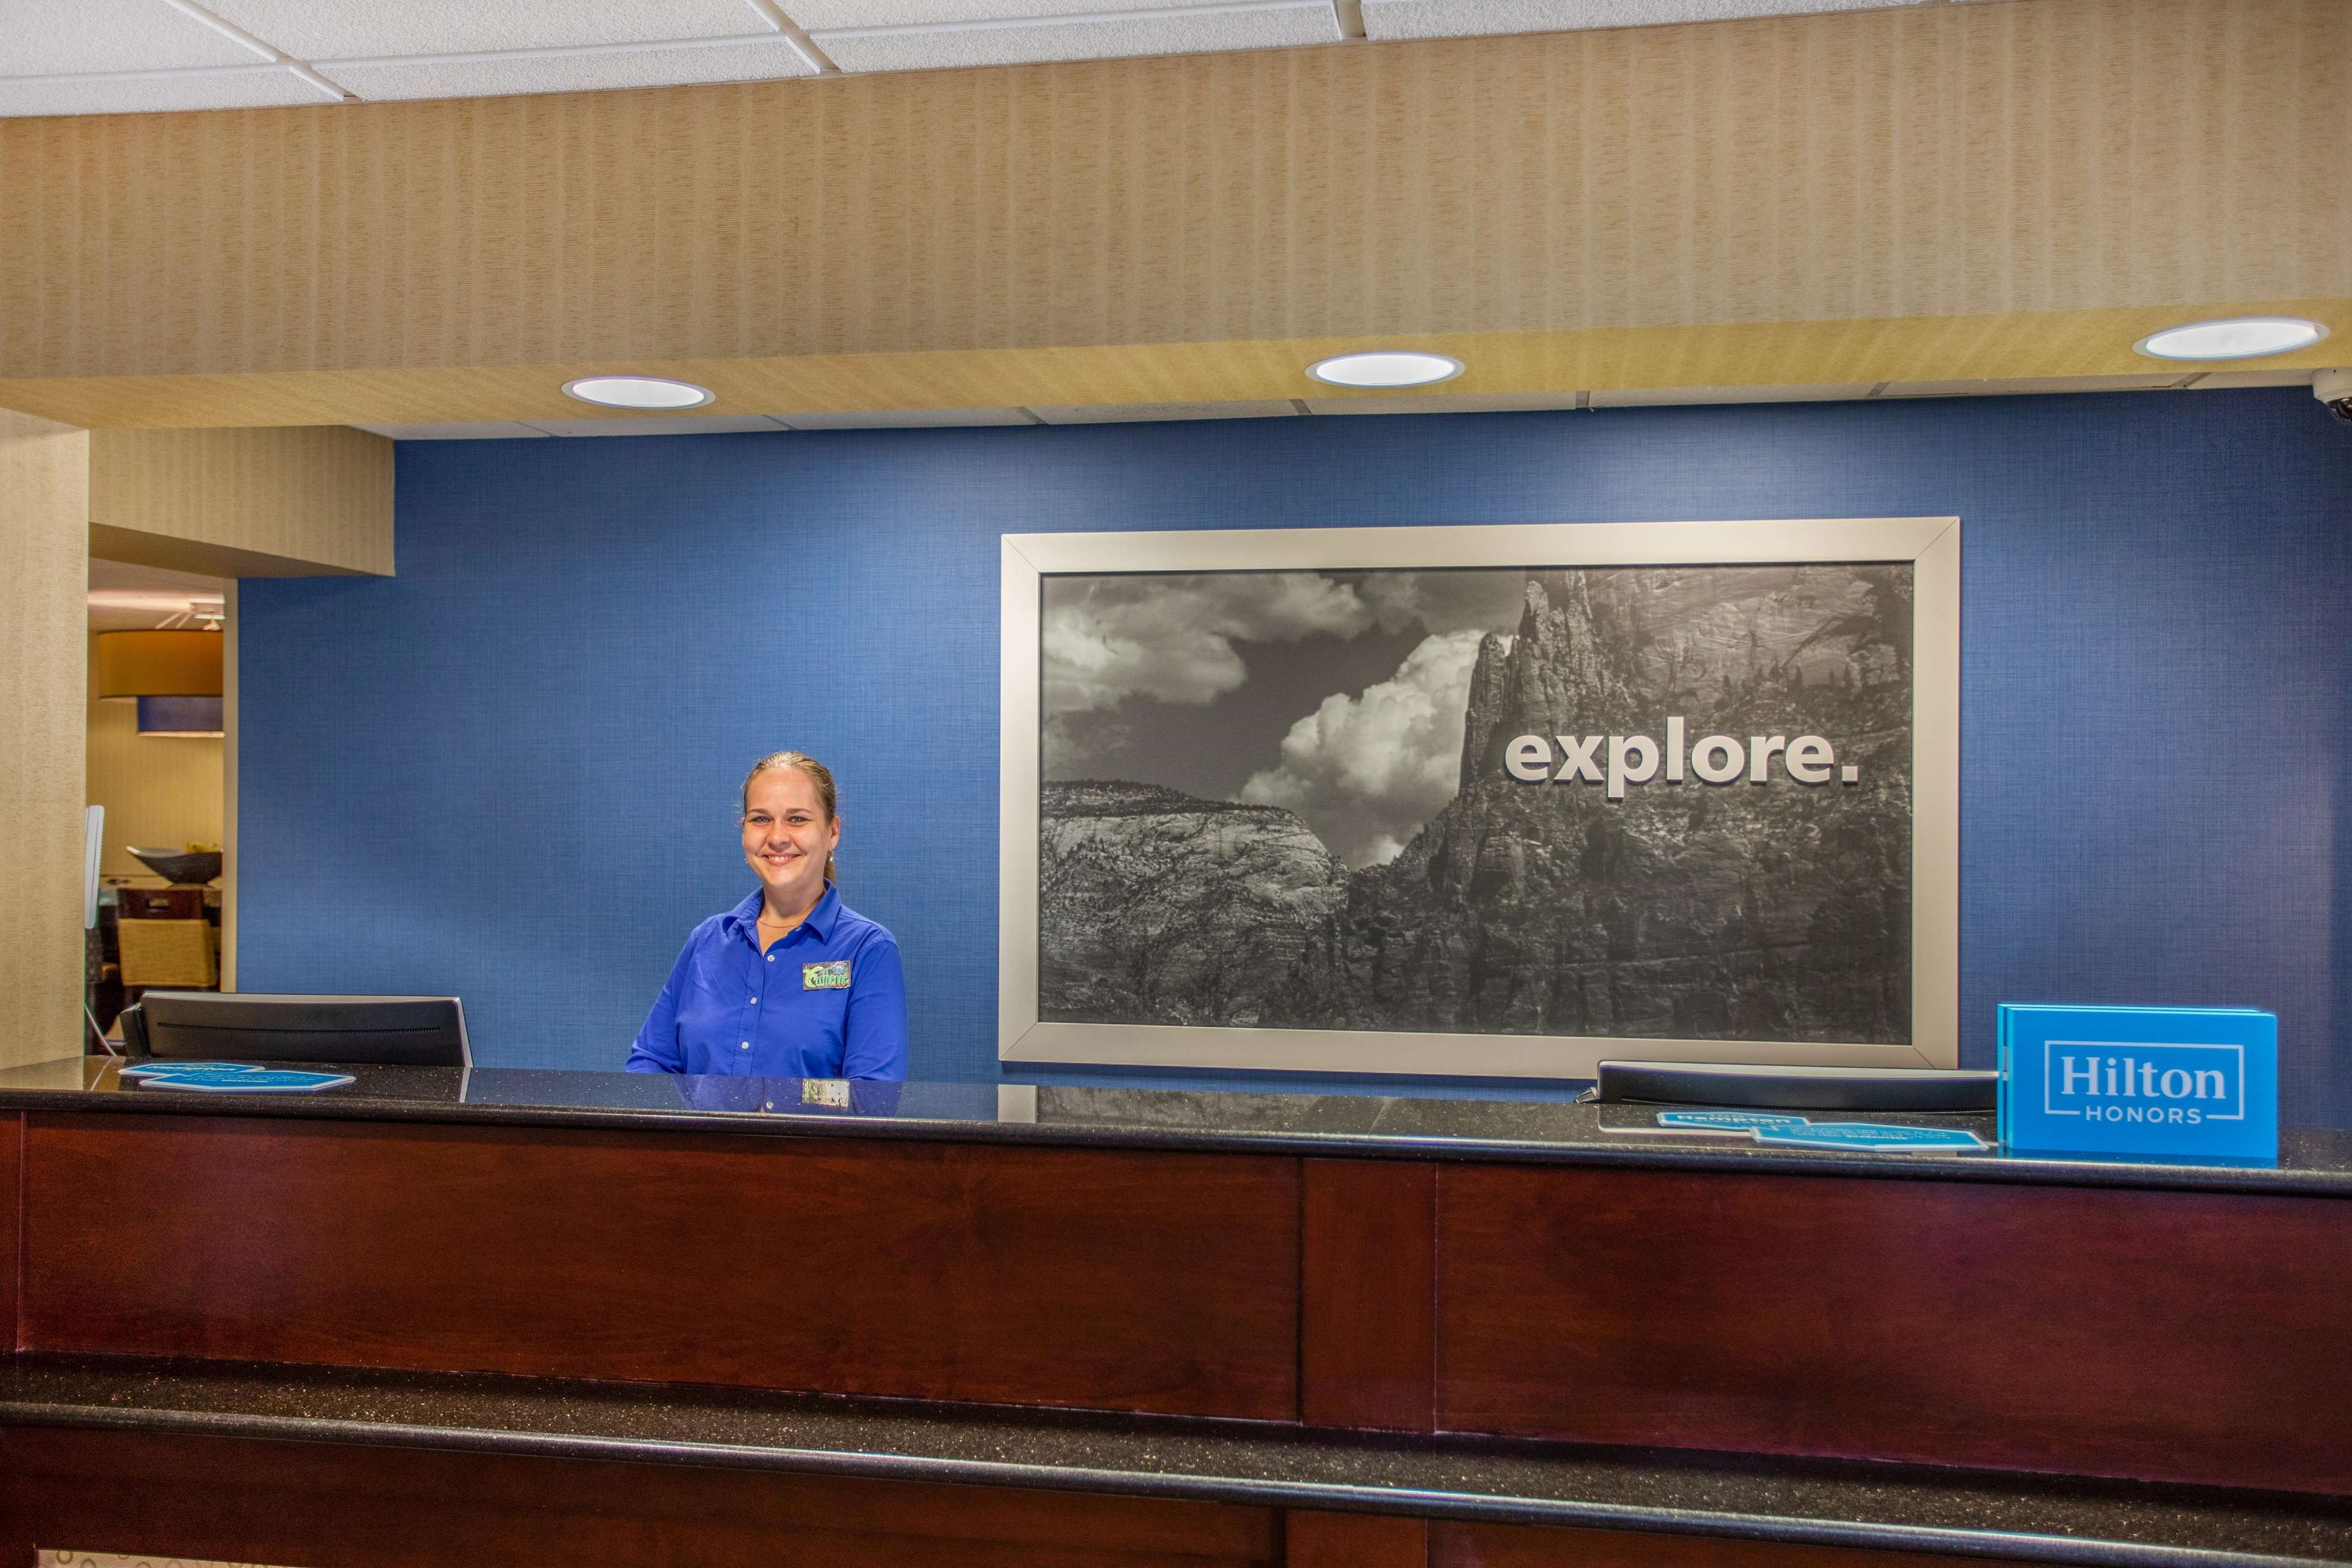 Hampton Inn Fishkill image 7